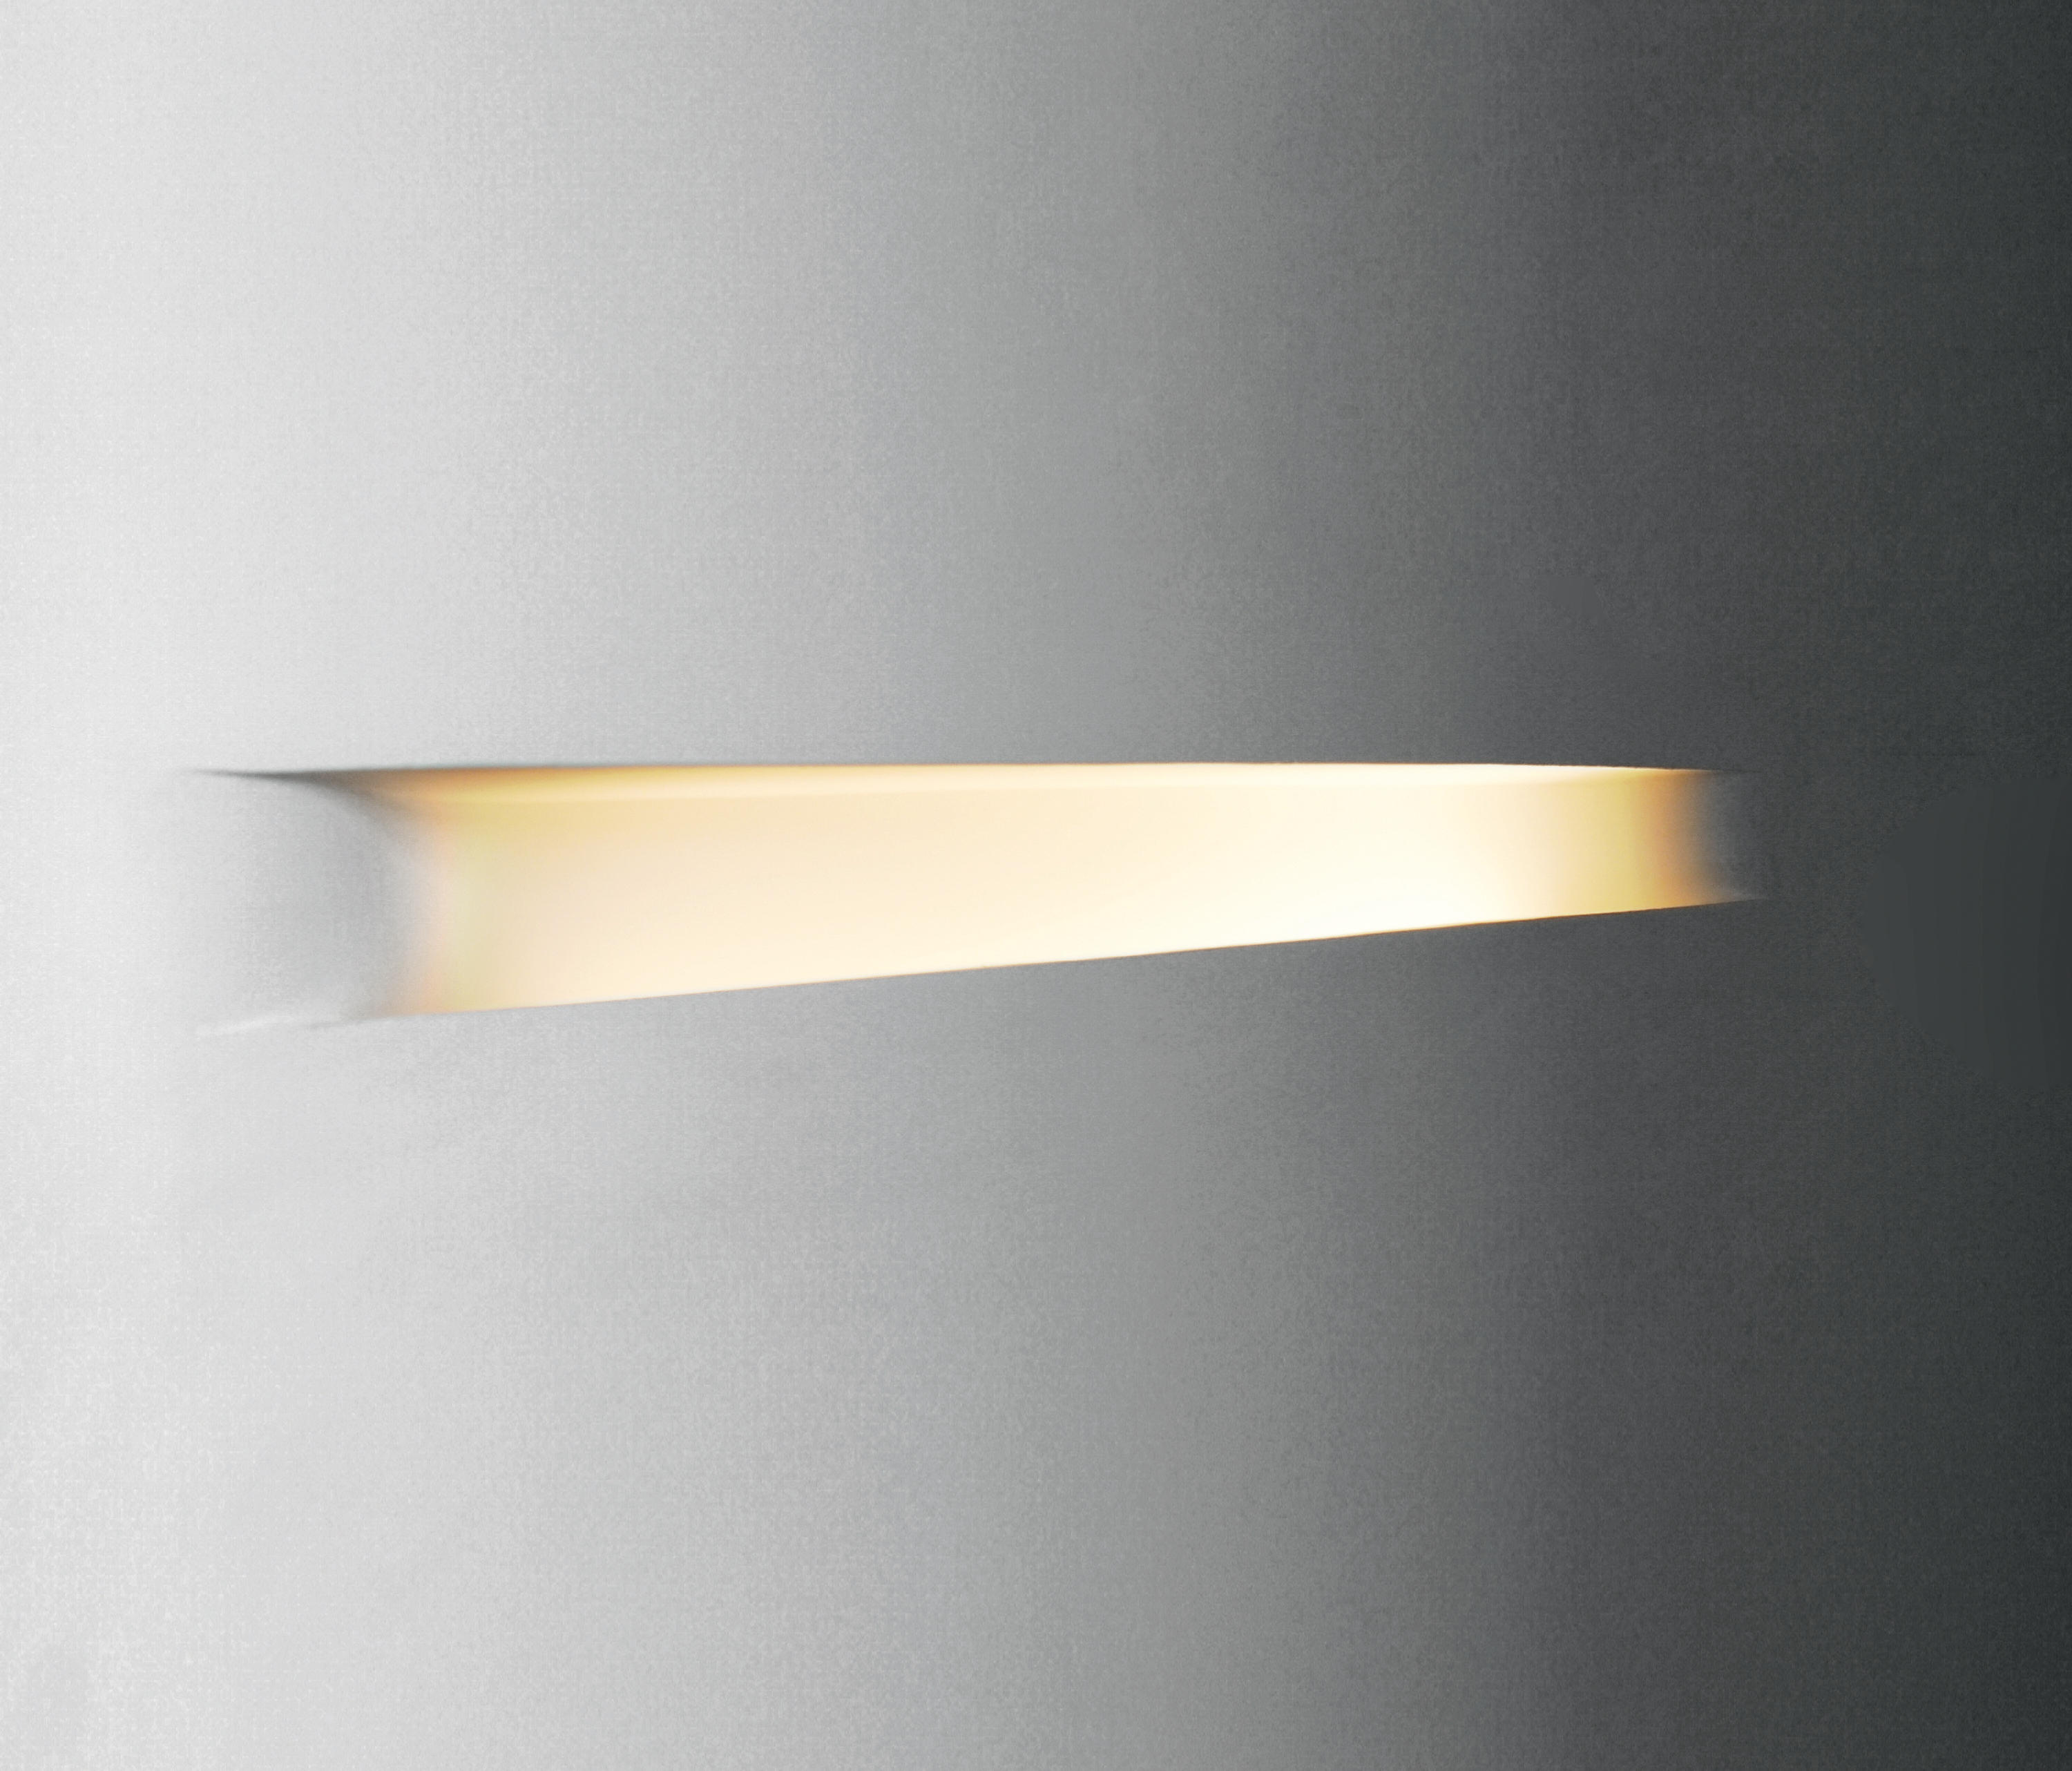 brick in the wall lighting. impression 2139 by brick in the wall general lighting